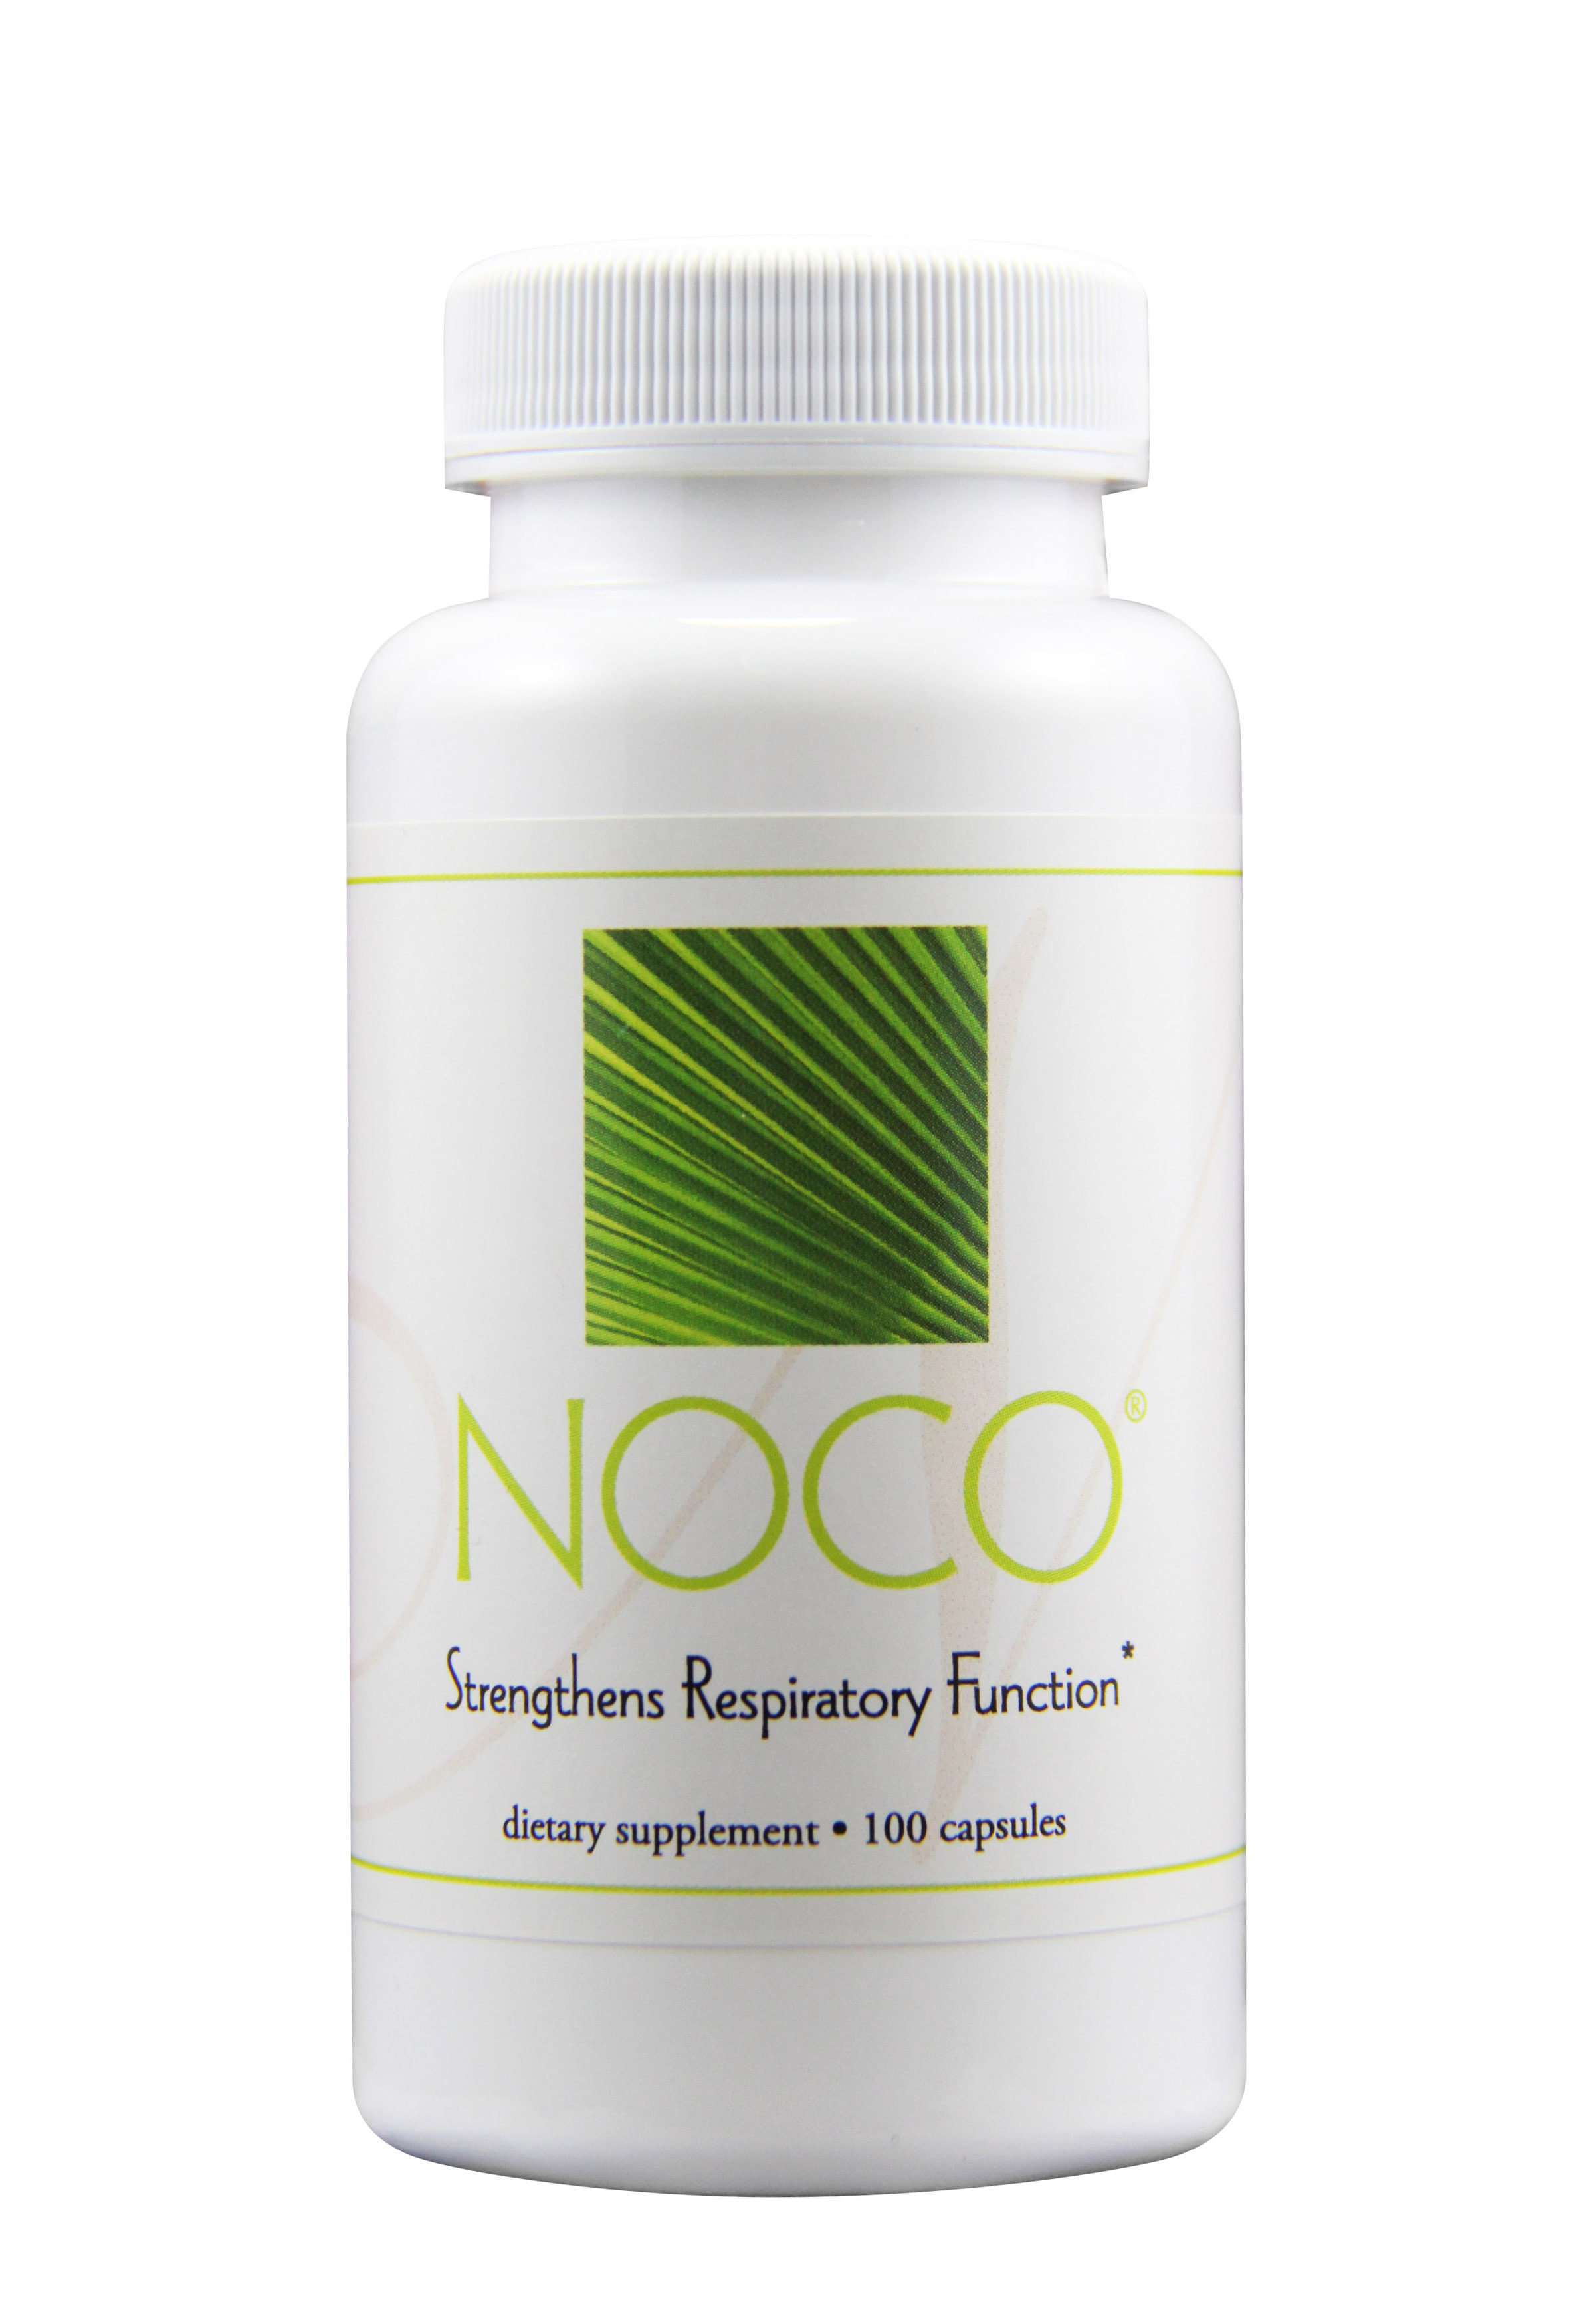 NOCO - DAILY SUPPORT FOR THE RESPIRATORY SYSTEM*Featured Ingredients: Panax Ginseng, Dark Plum, Licorice Root, Ganoderma, Peppermint, Chrysanthemum